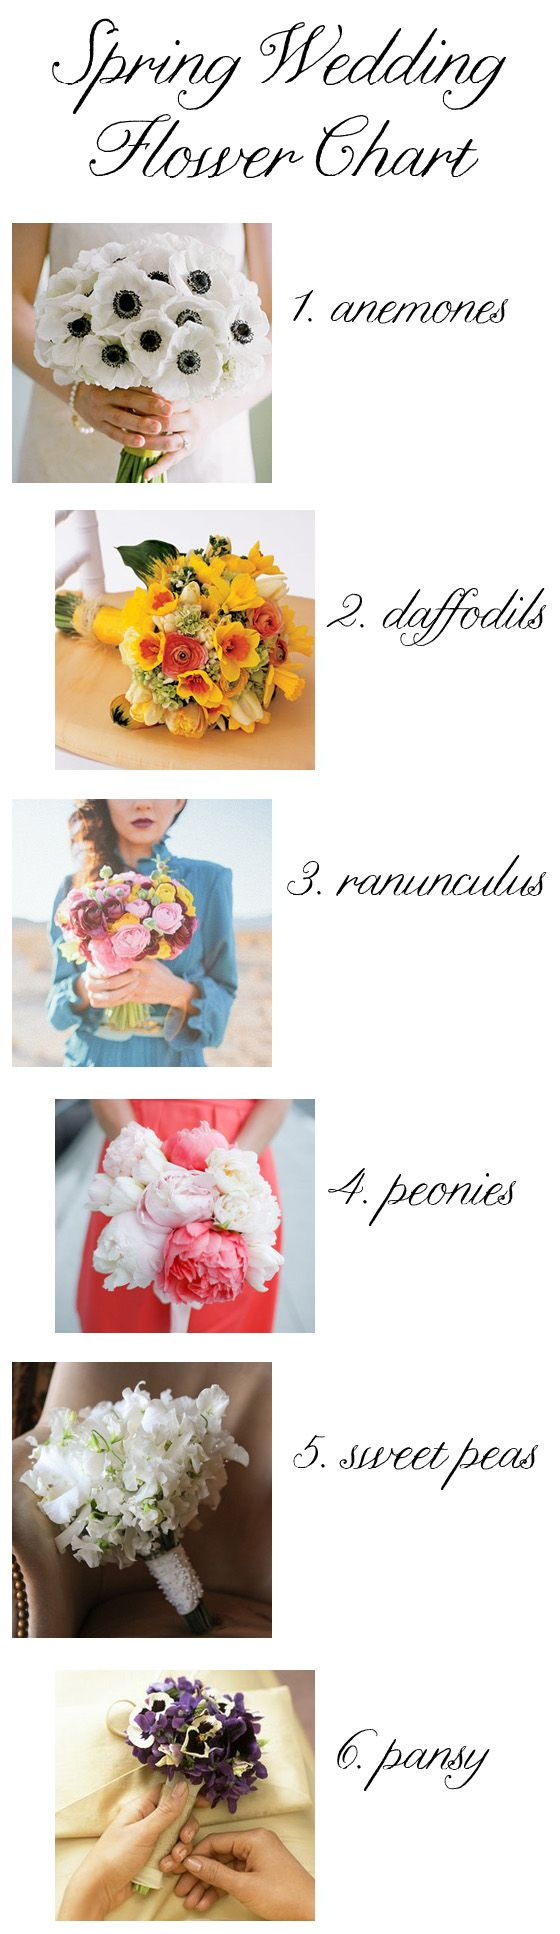 In need of some flower ideas for your spring wedding bouquets? This helpful little chart will get your wheels turning.  Our wedding is in early May.  Unfortunately, peonies aren't really in season until later in May and into June. We'll substitute with garden roses.